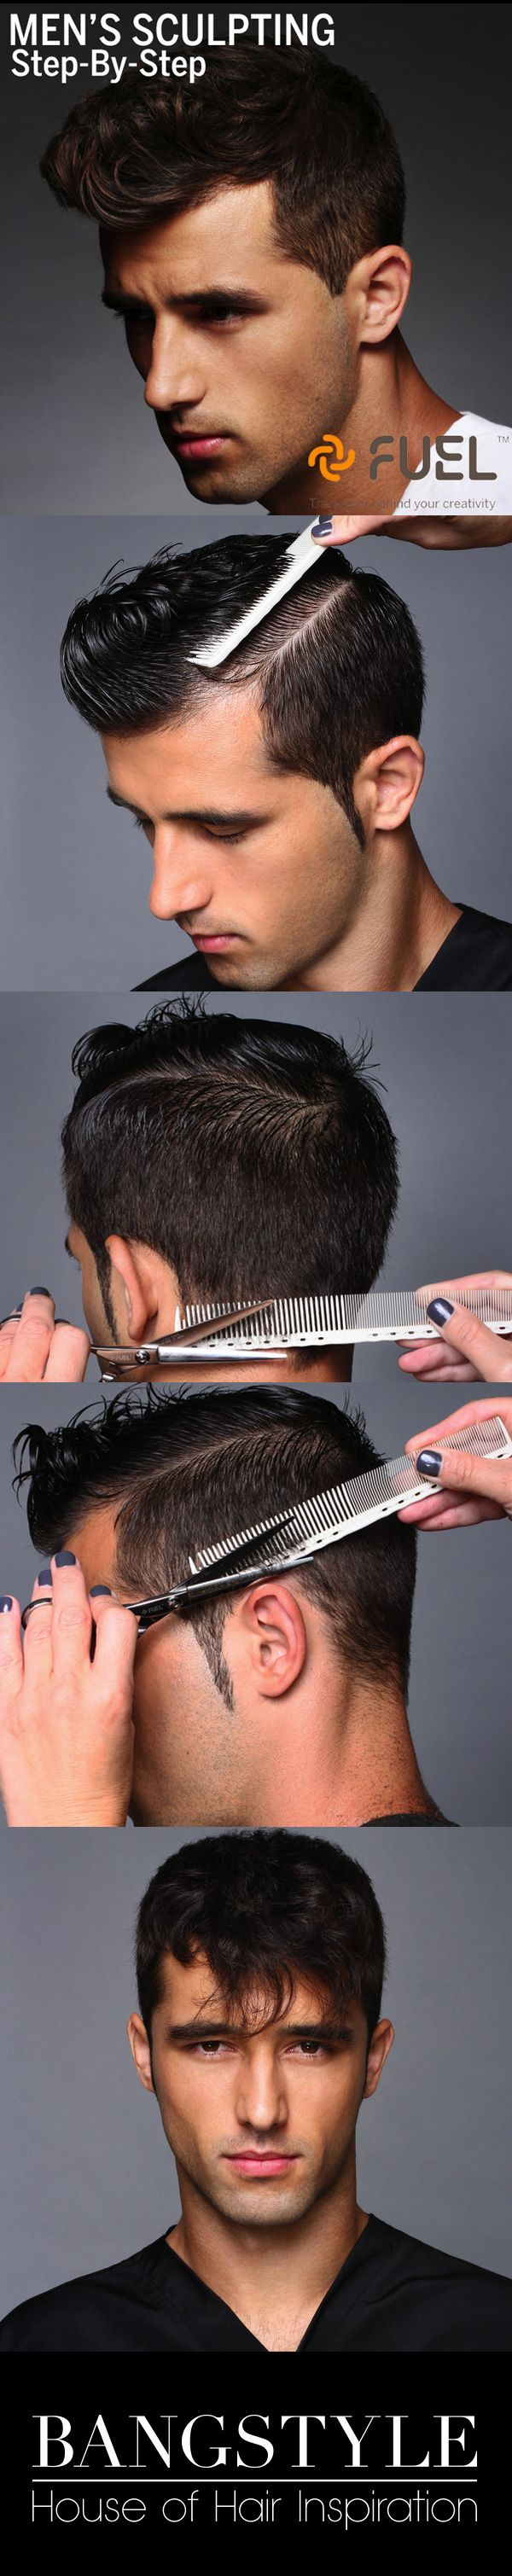 Step-by-step sculpting guide for men's hair